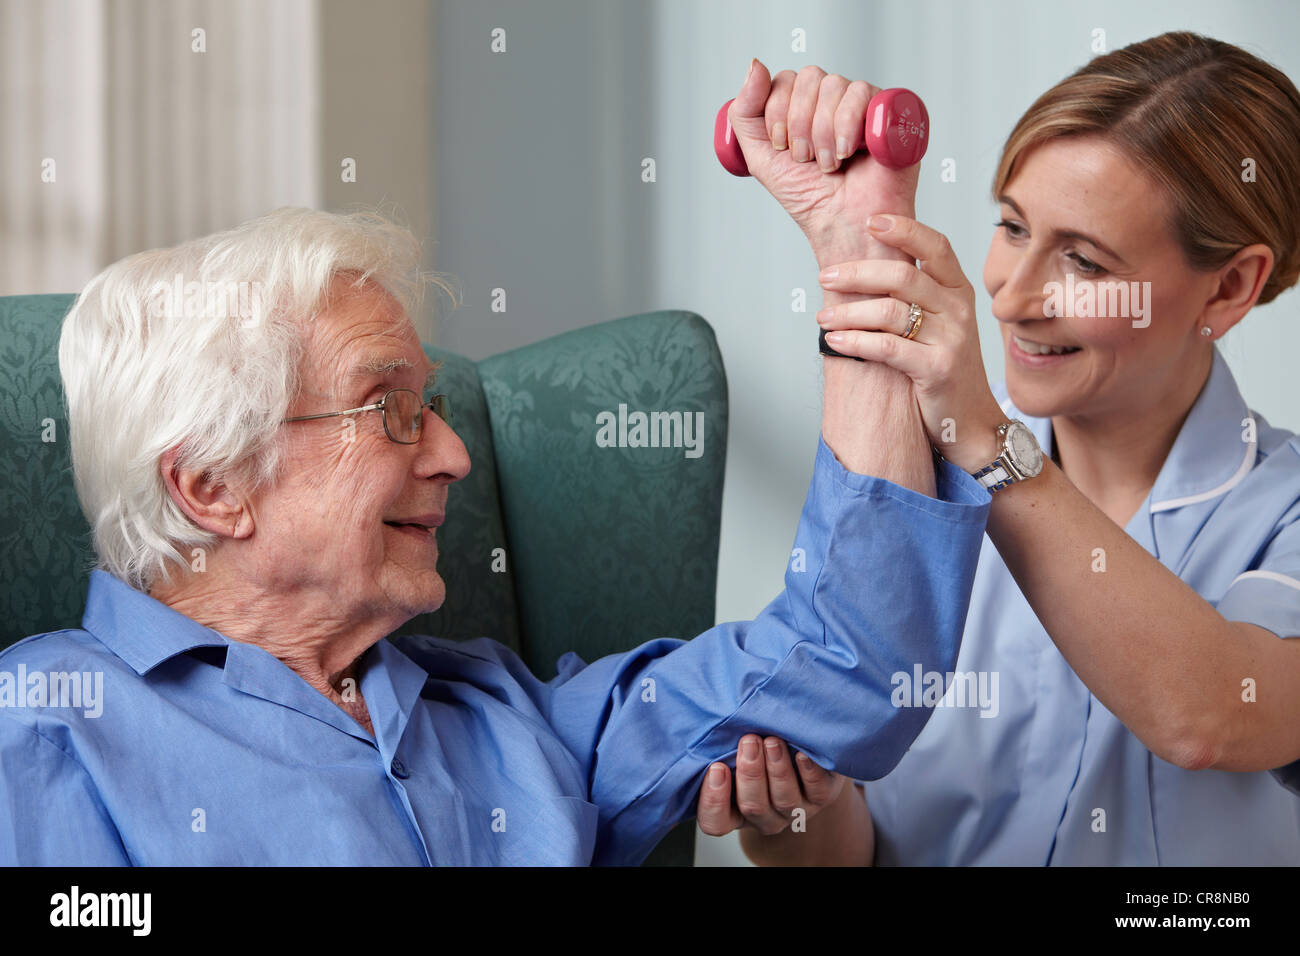 Carer assisting senior man with hand weights - Stock Image